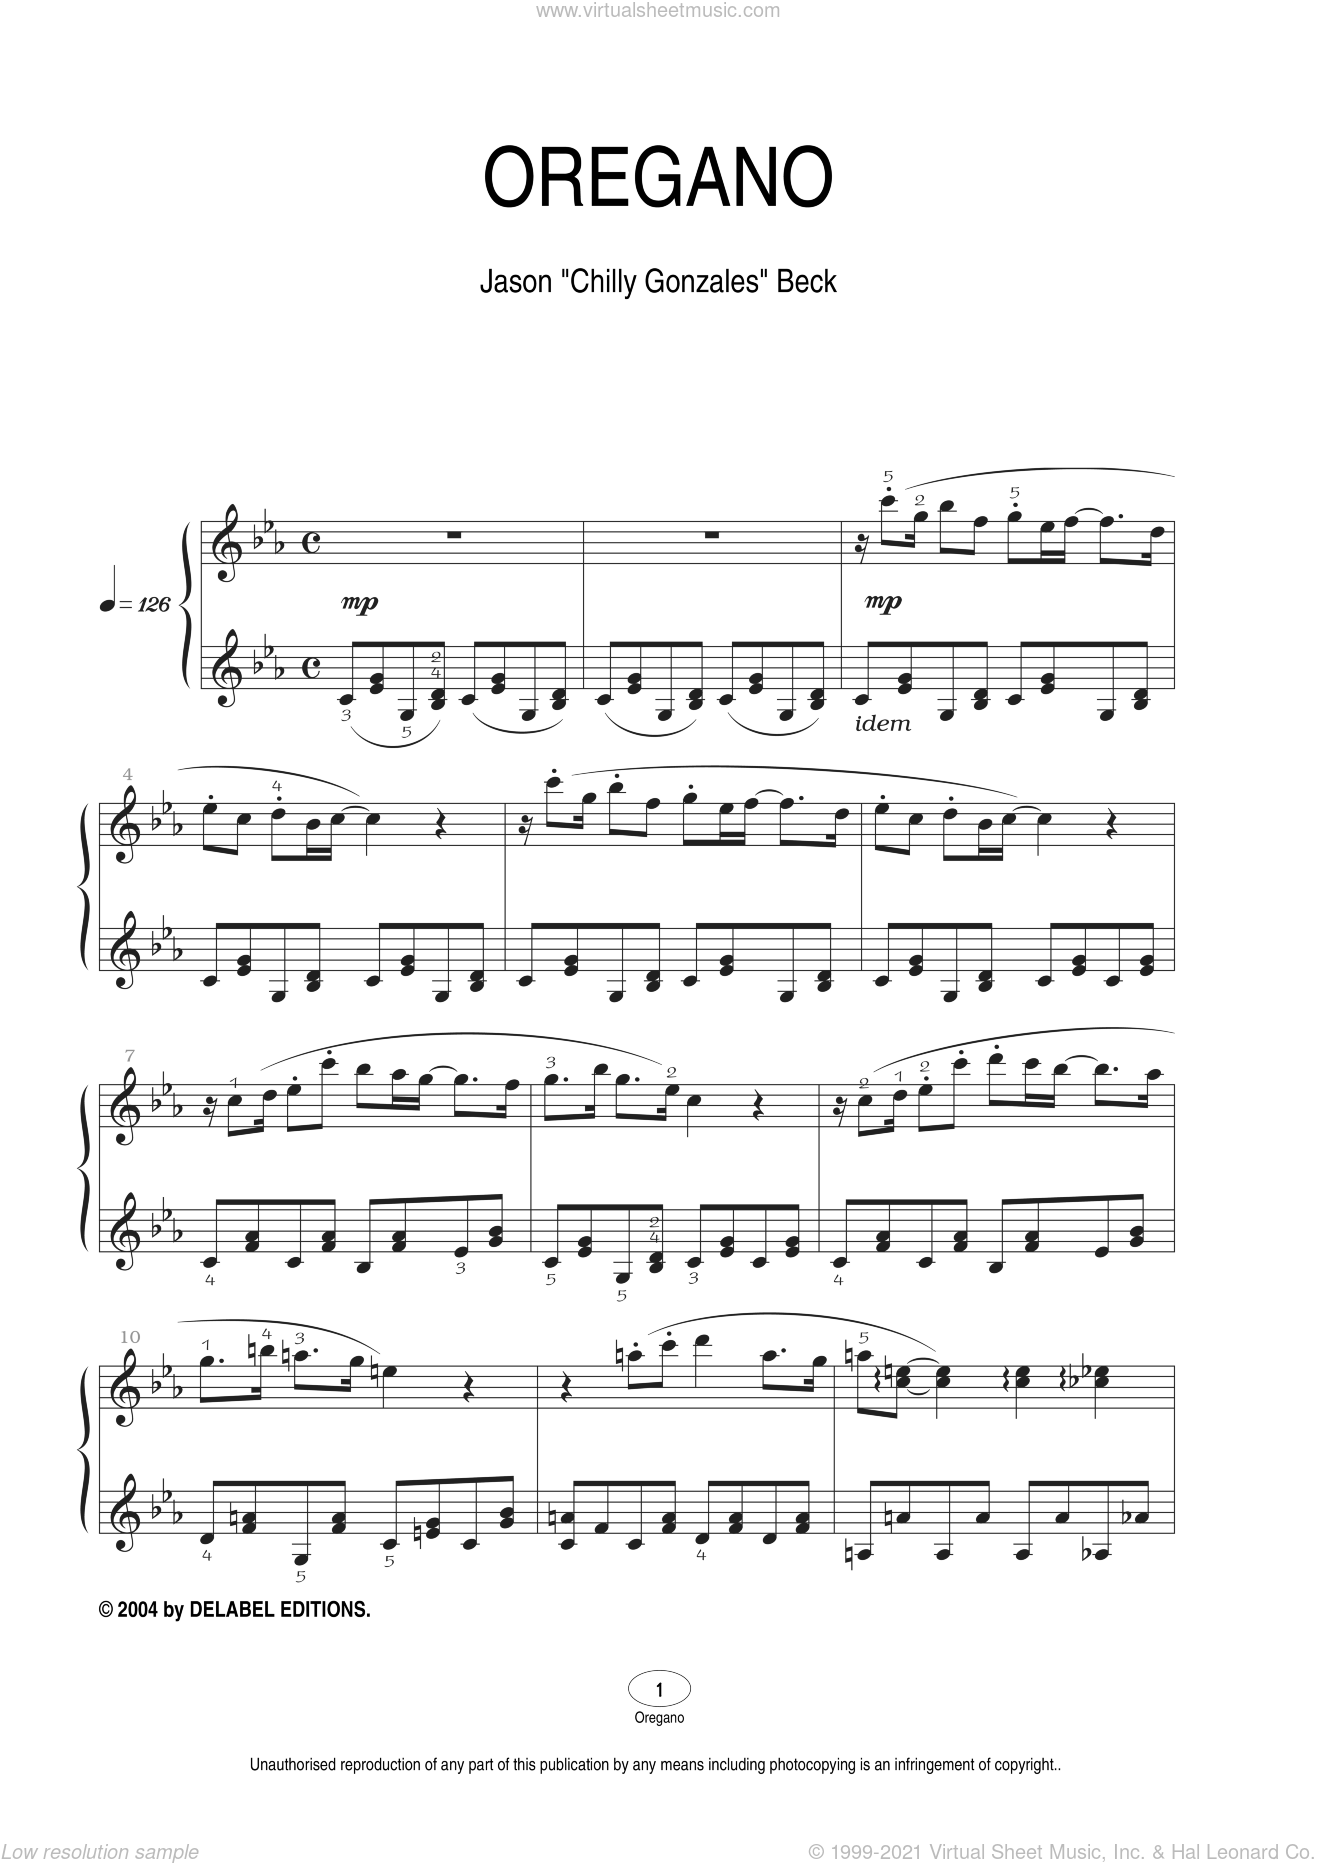 Oregano sheet music for piano solo by Chilly Gonzales and Jason Beck. Score Image Preview.